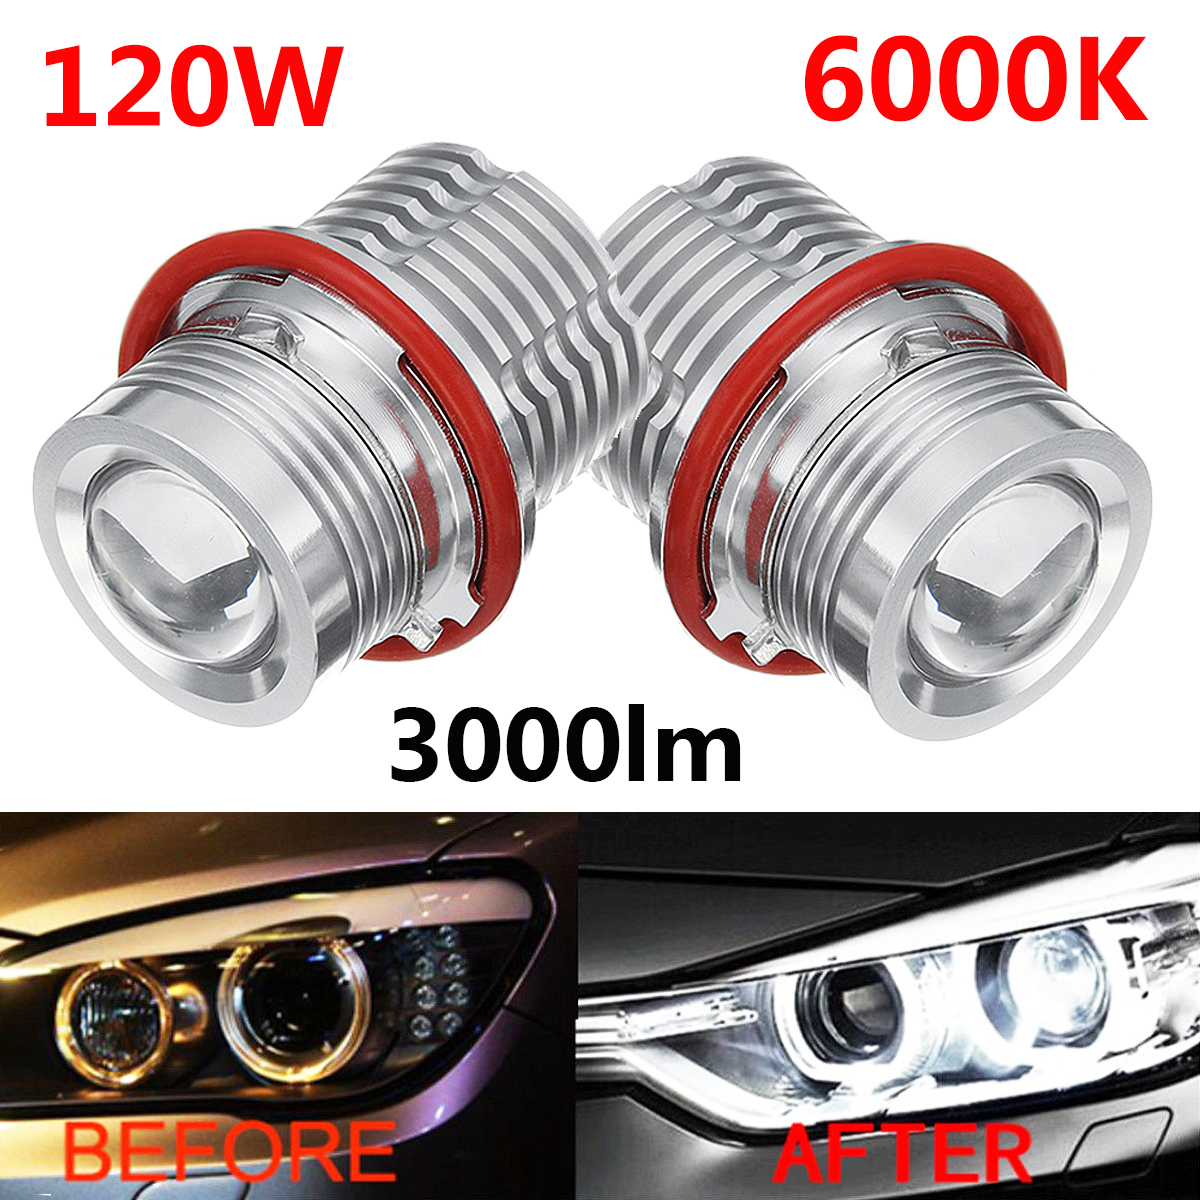 2pcs LED Angel Eyes for BMW E39 E60 E63 E53 Marker Light Bulb Error Free Bulbs 6000K 120W White LED Front Light Car Headlight